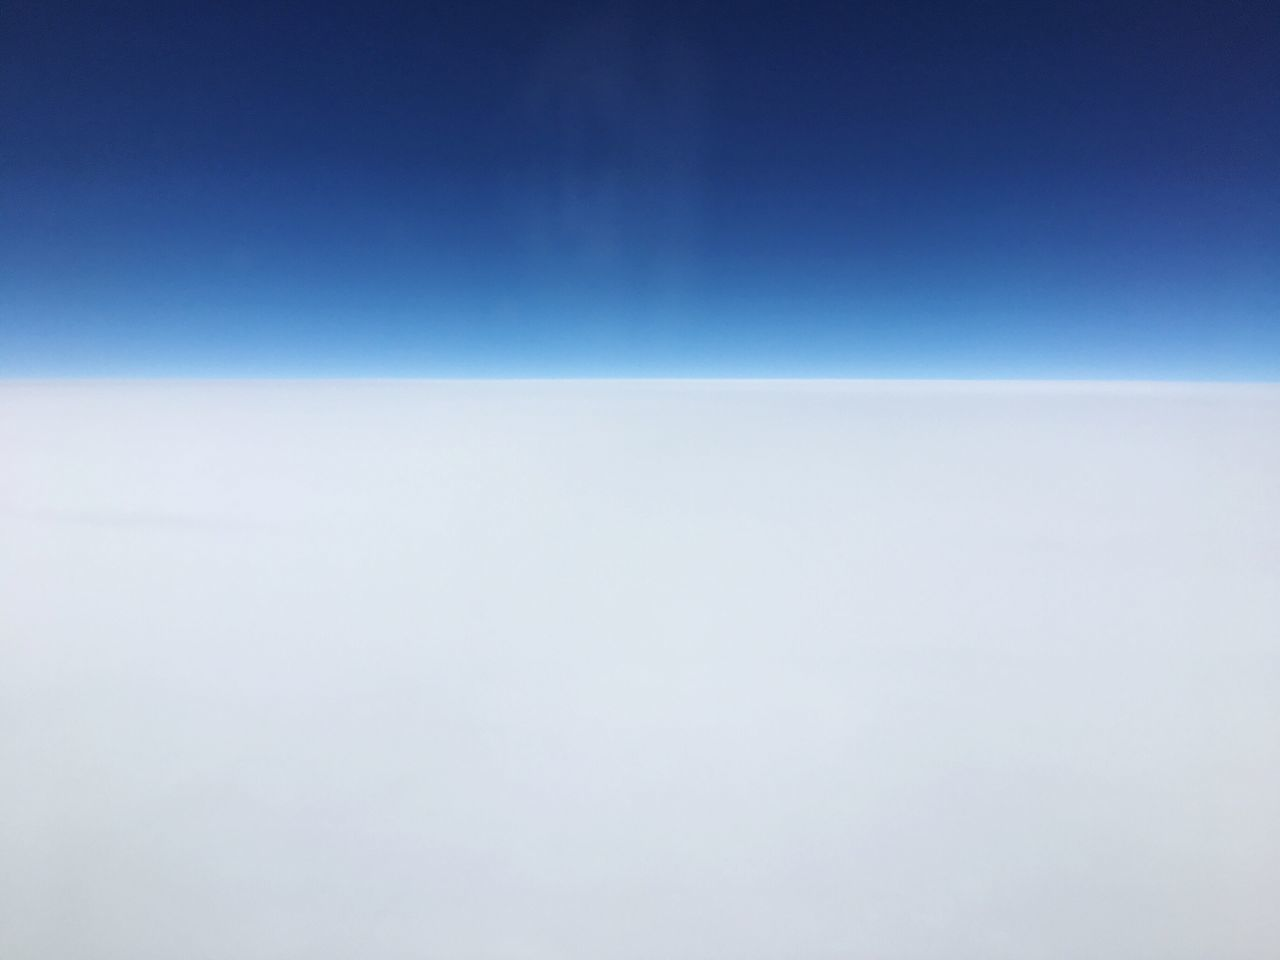 Copy Space Blue Nature No People Tranquil Scene Day Sky Tranquility Clear Sky Beauty In Nature Outdoors Backgrounds Scenics Close-up Airplaneview